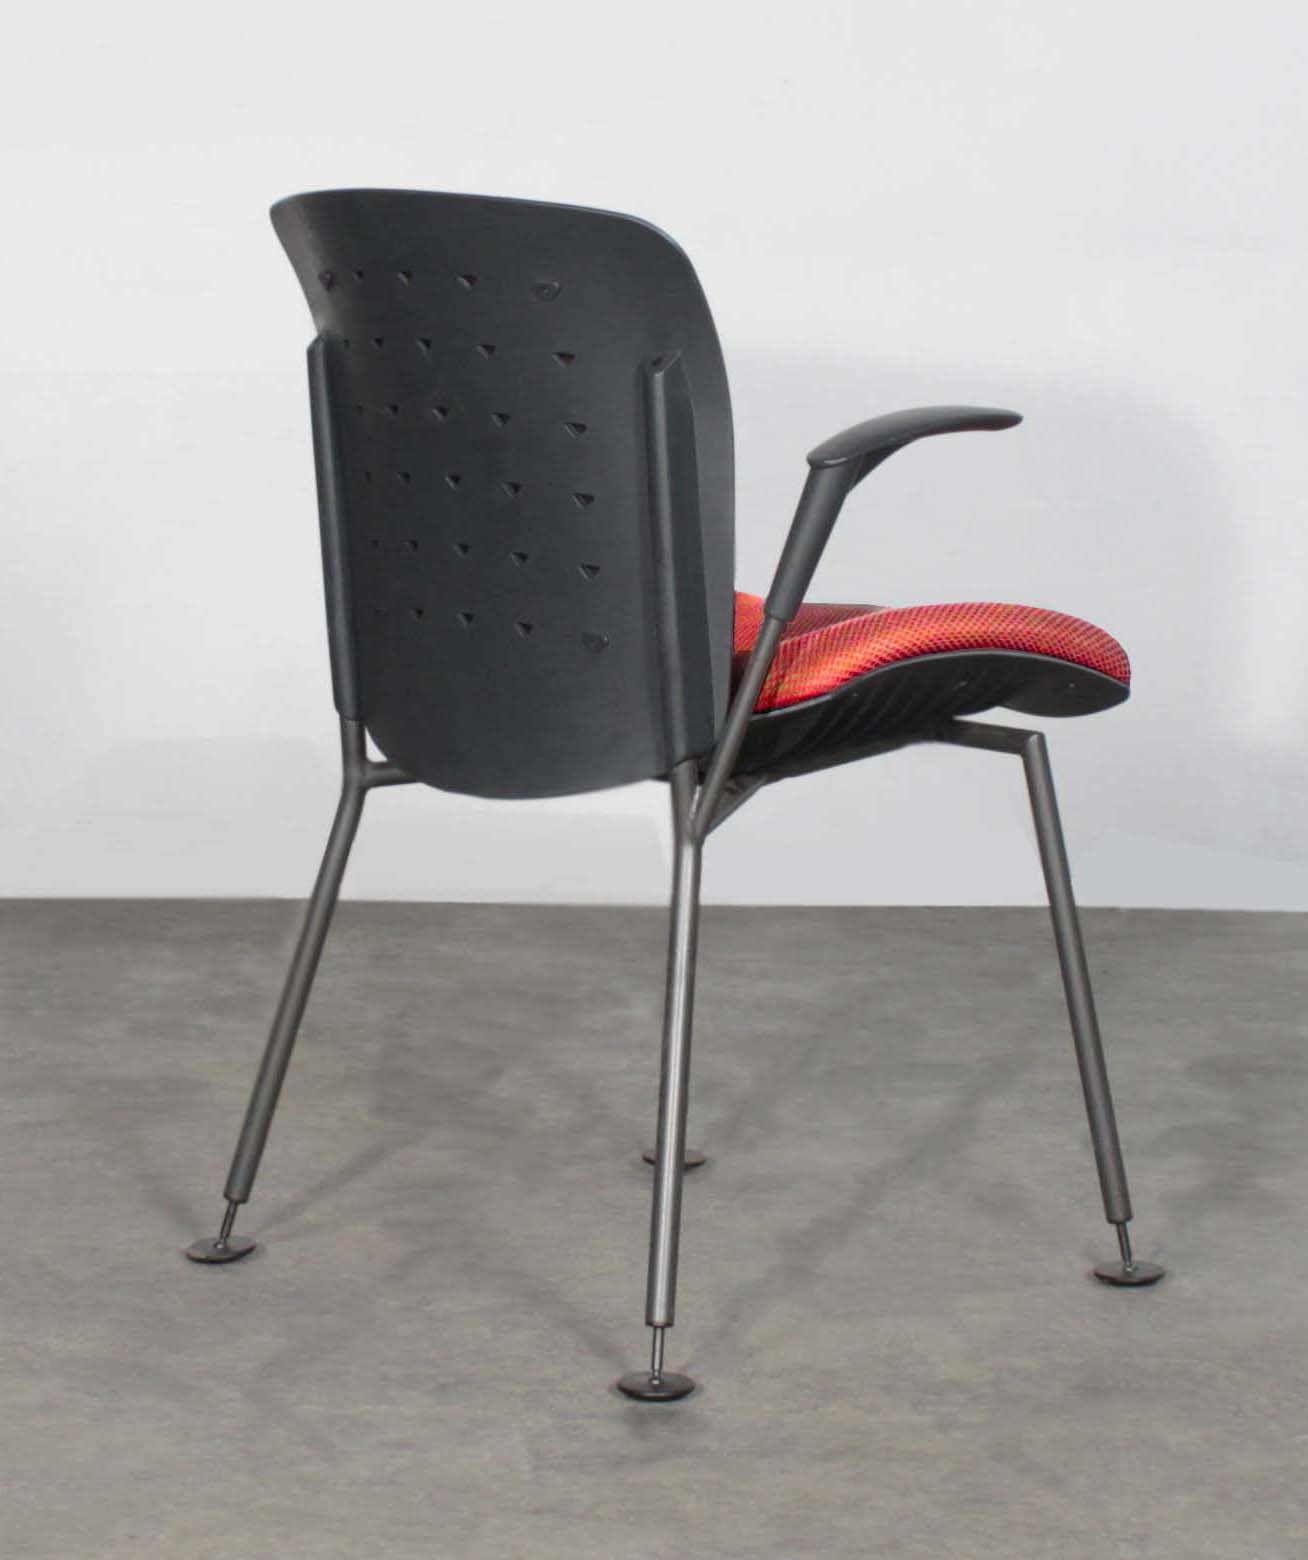 Sitag Used Vito Visitors Chair Red National Office Interiors And